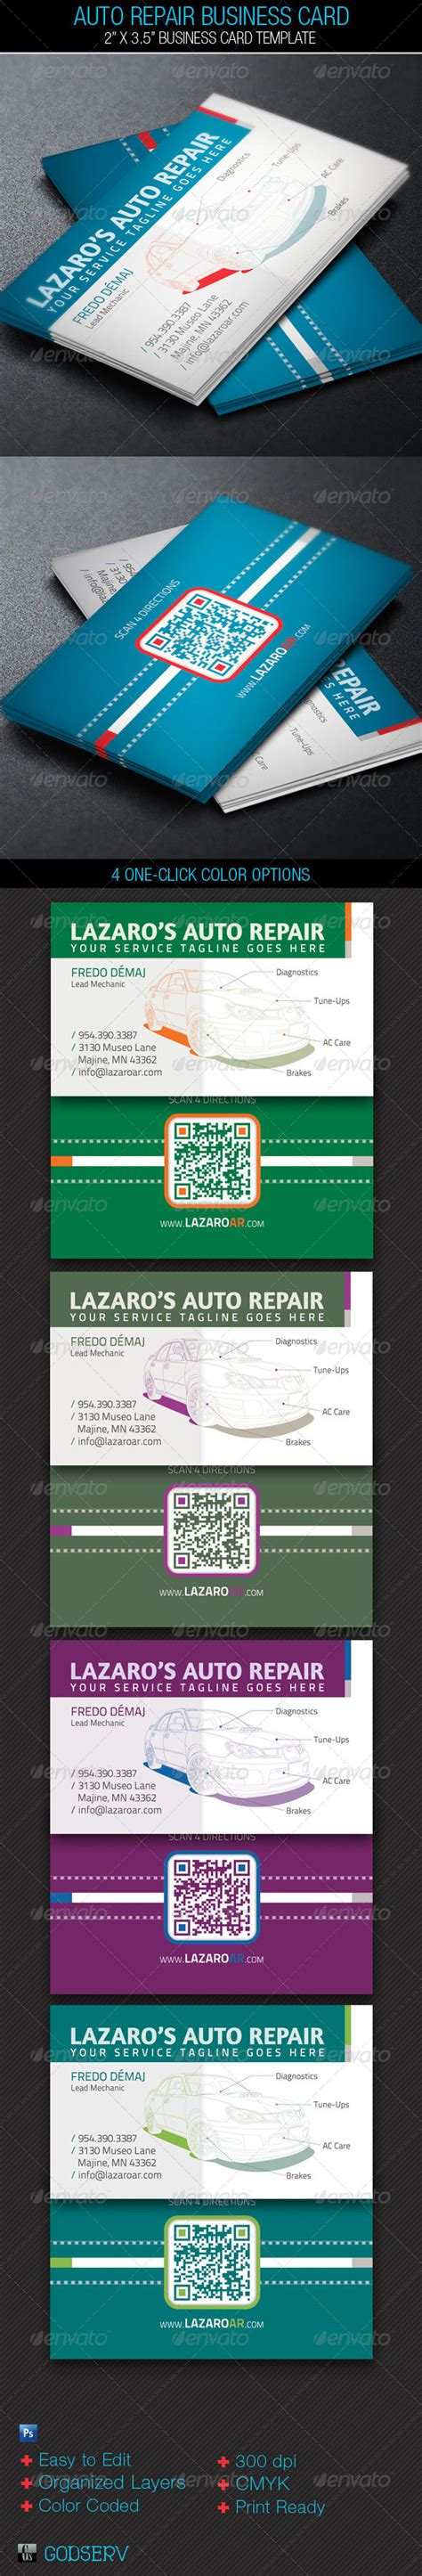 http graphicriver net item funeral service business card template 10998645 auto repair service business card template graphicriver